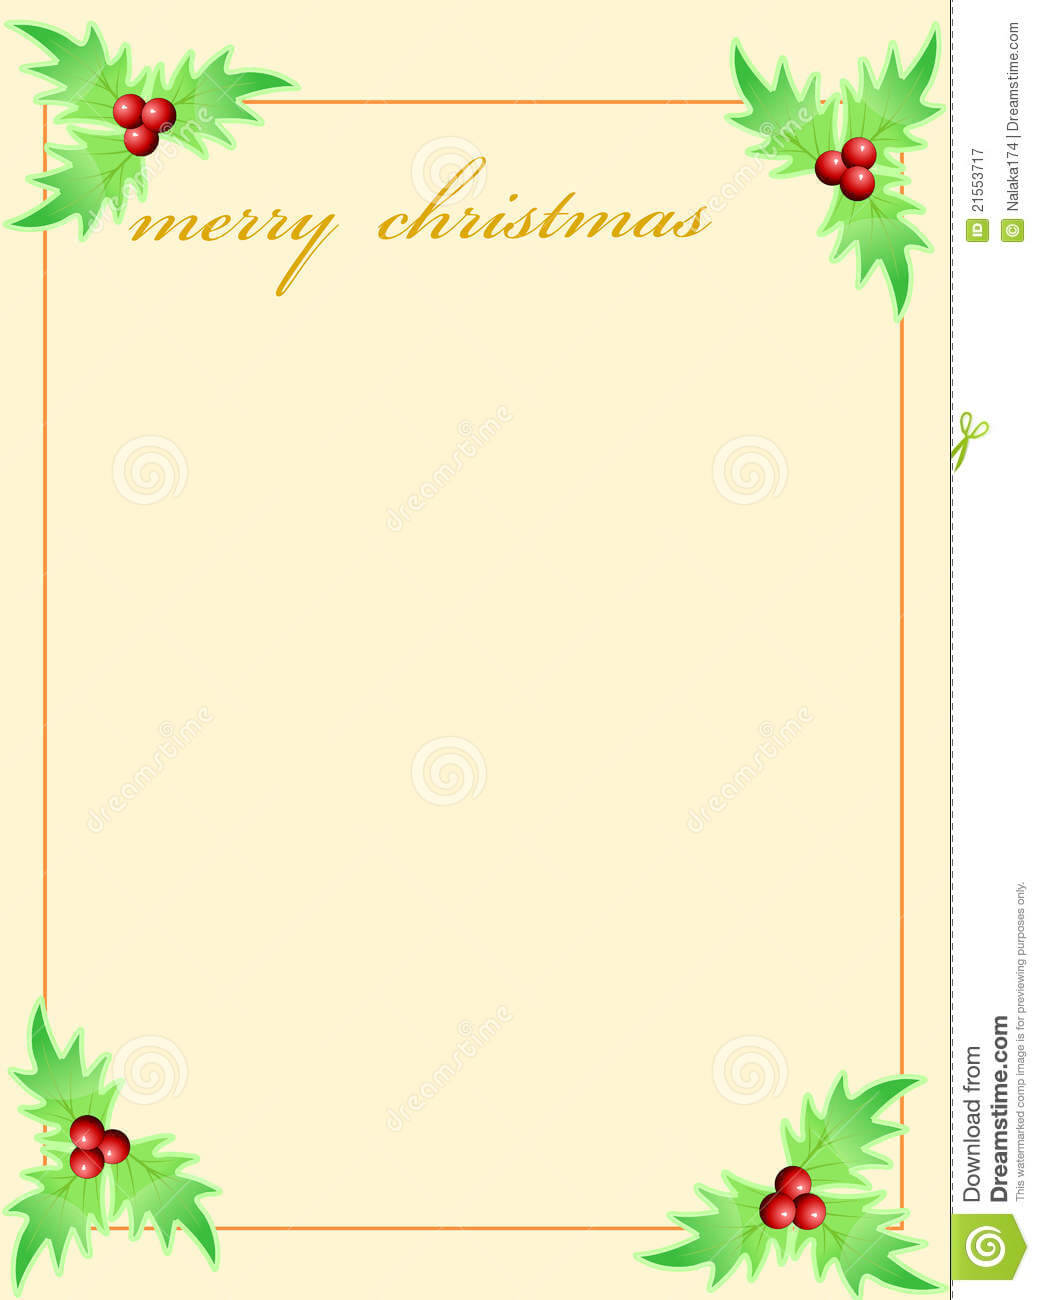 Best Photos Of Blank Greeting Card Templates Free - Free in Blank Christmas Card Templates Free